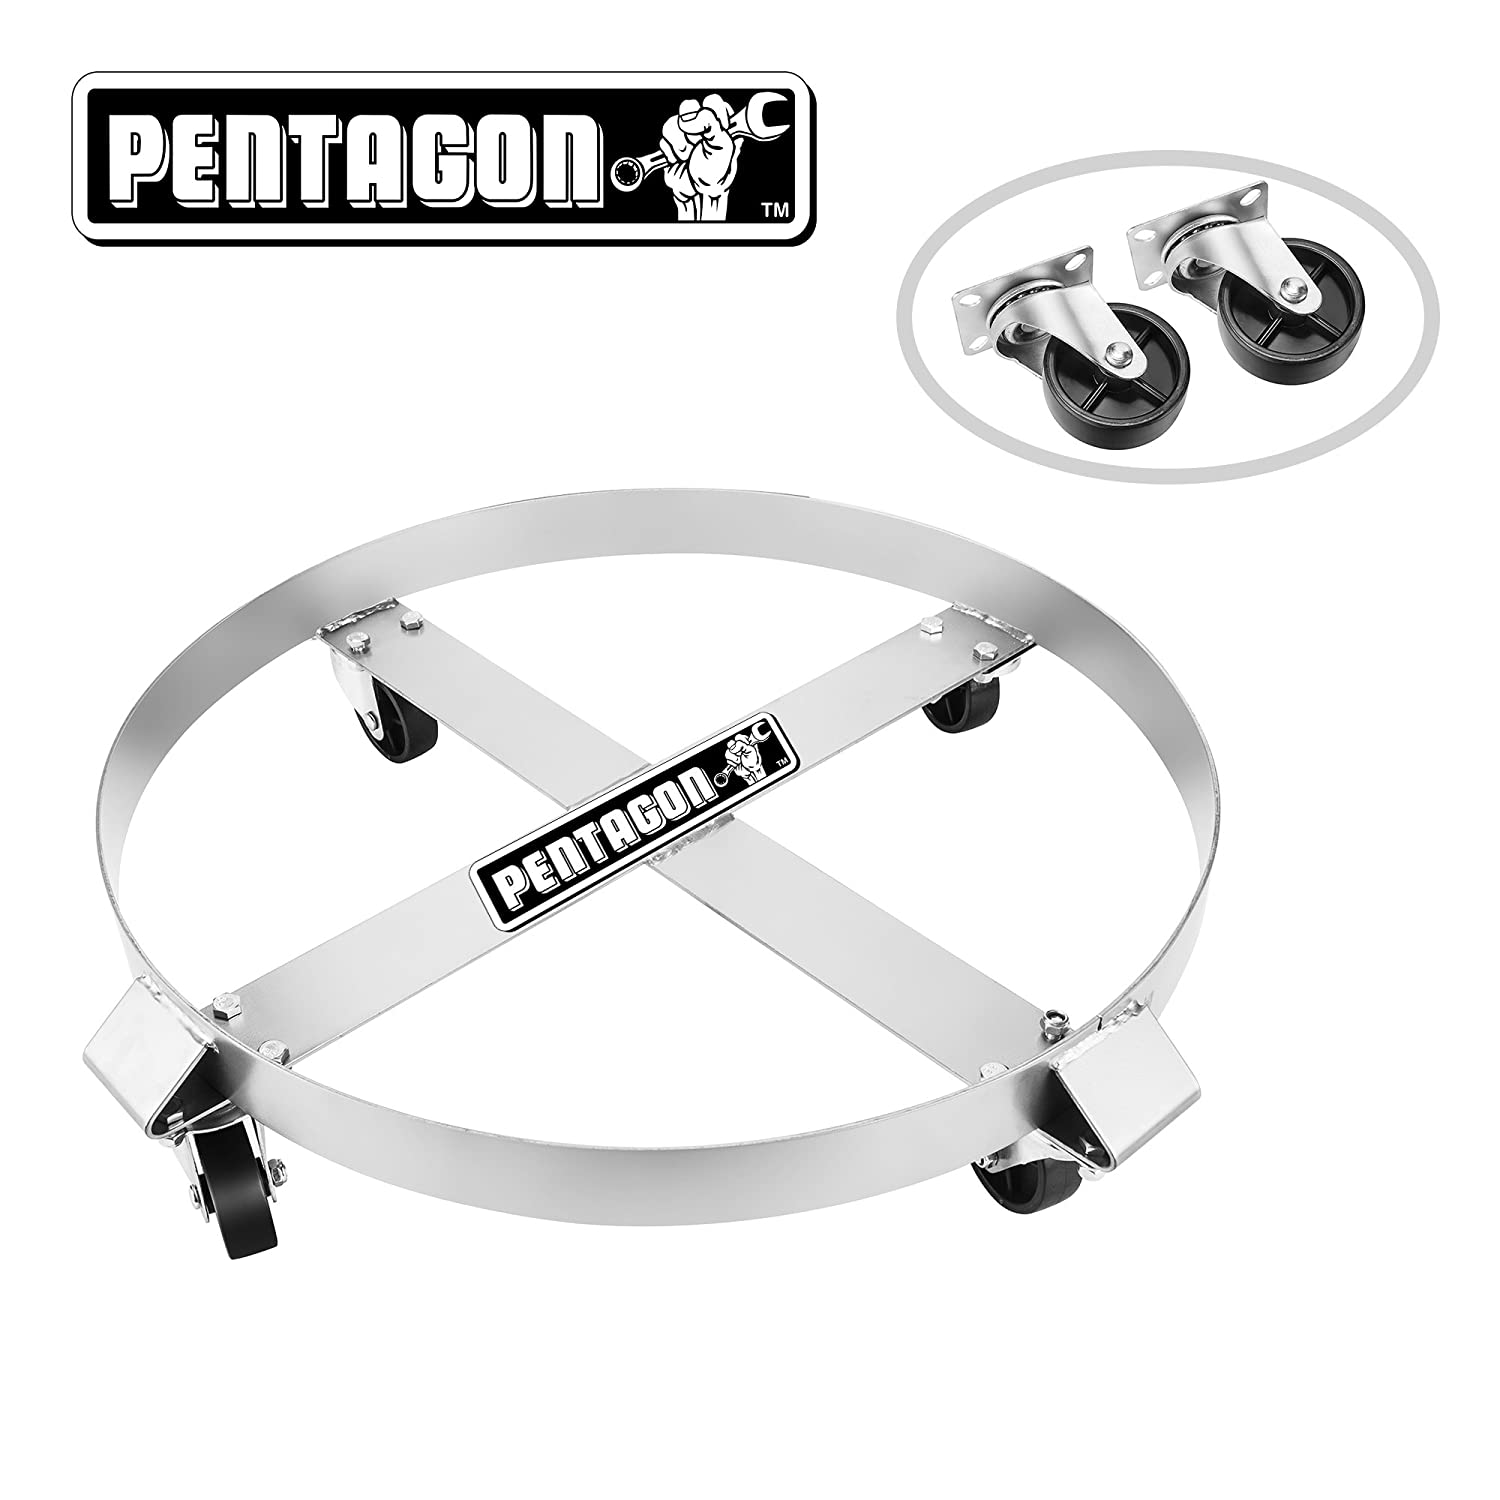 Pentagon Tool 83 DT5493 Heavy Duty | 55 Gallon Drum Dolly | Single | Silver